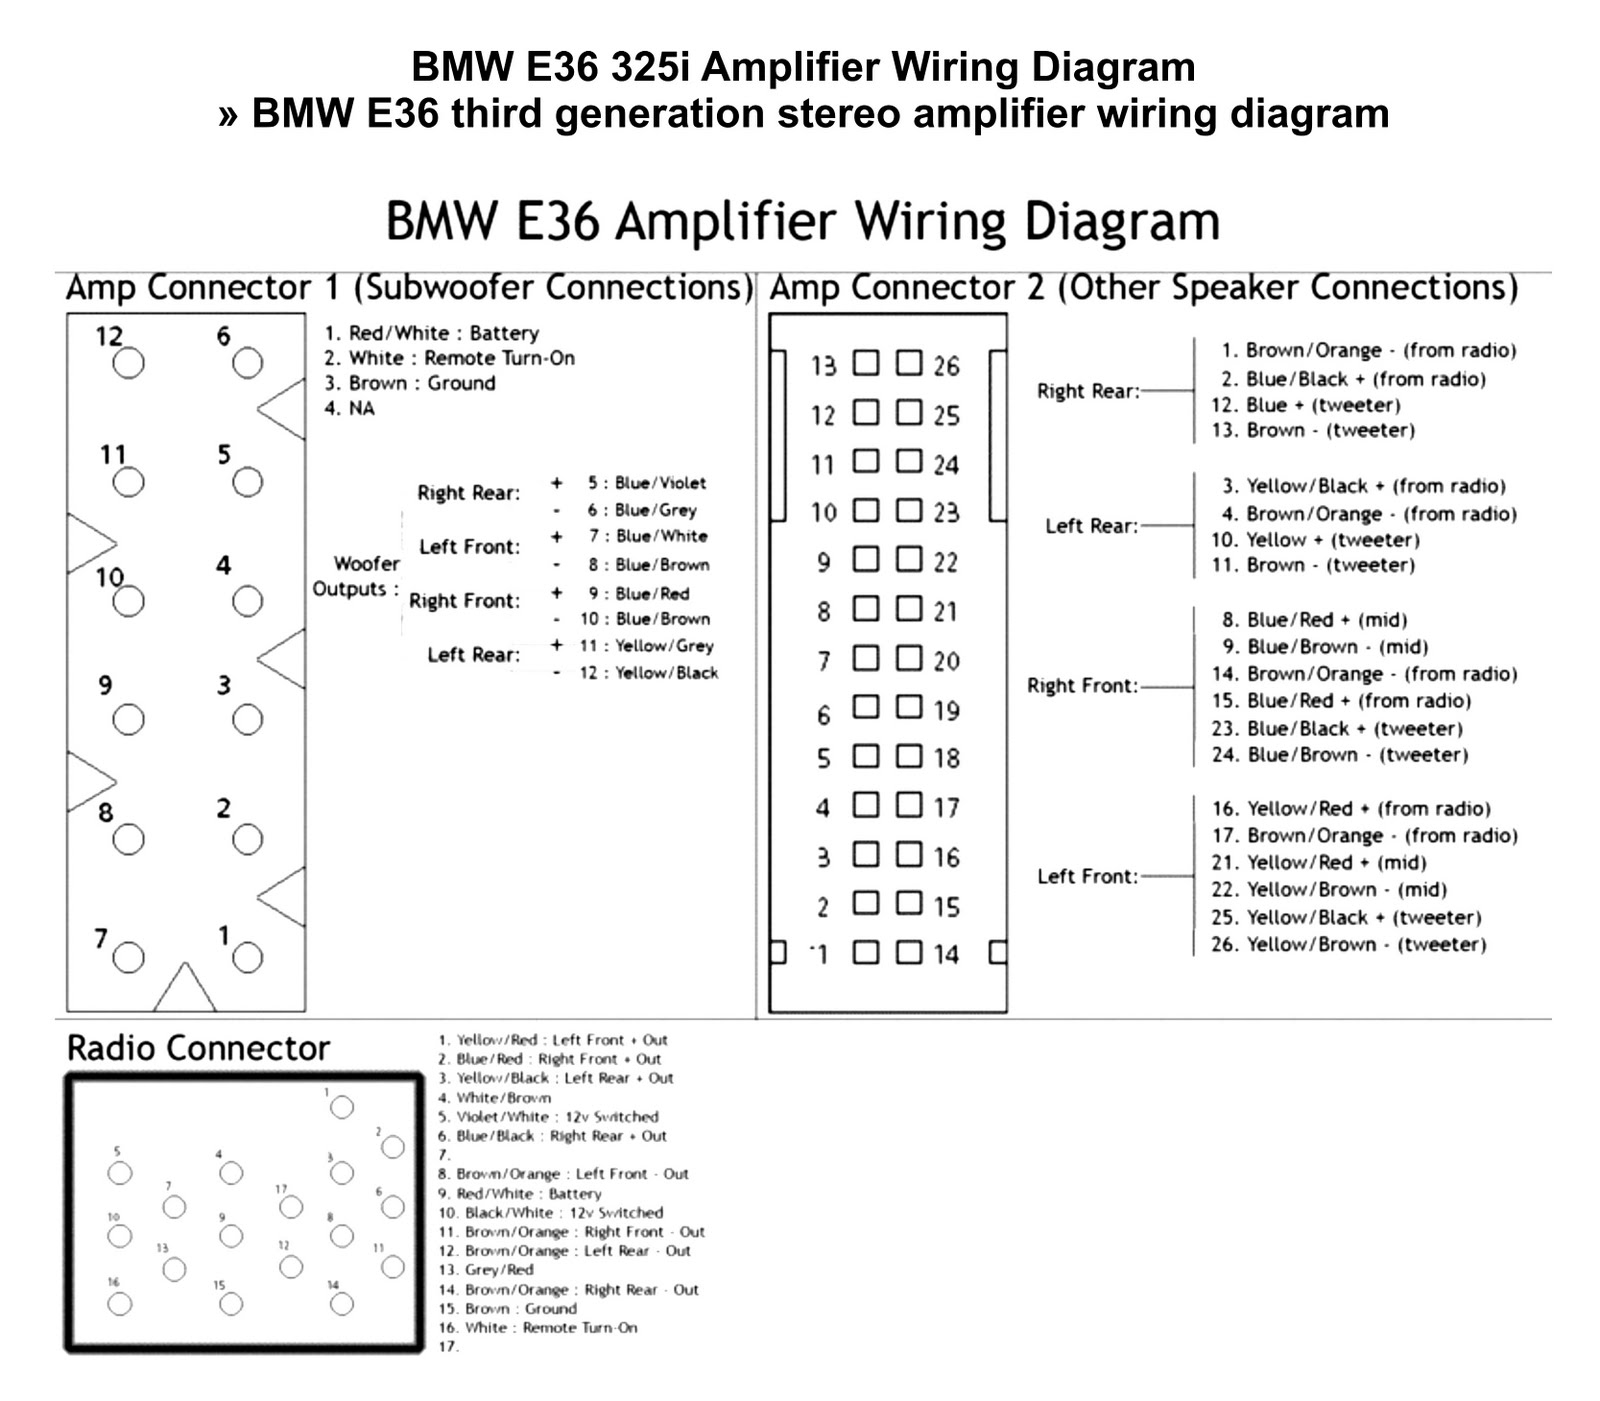 bmw e38 radio wiring diagram - somurich.com bmw e38 amplifier wiring diagram manual #1